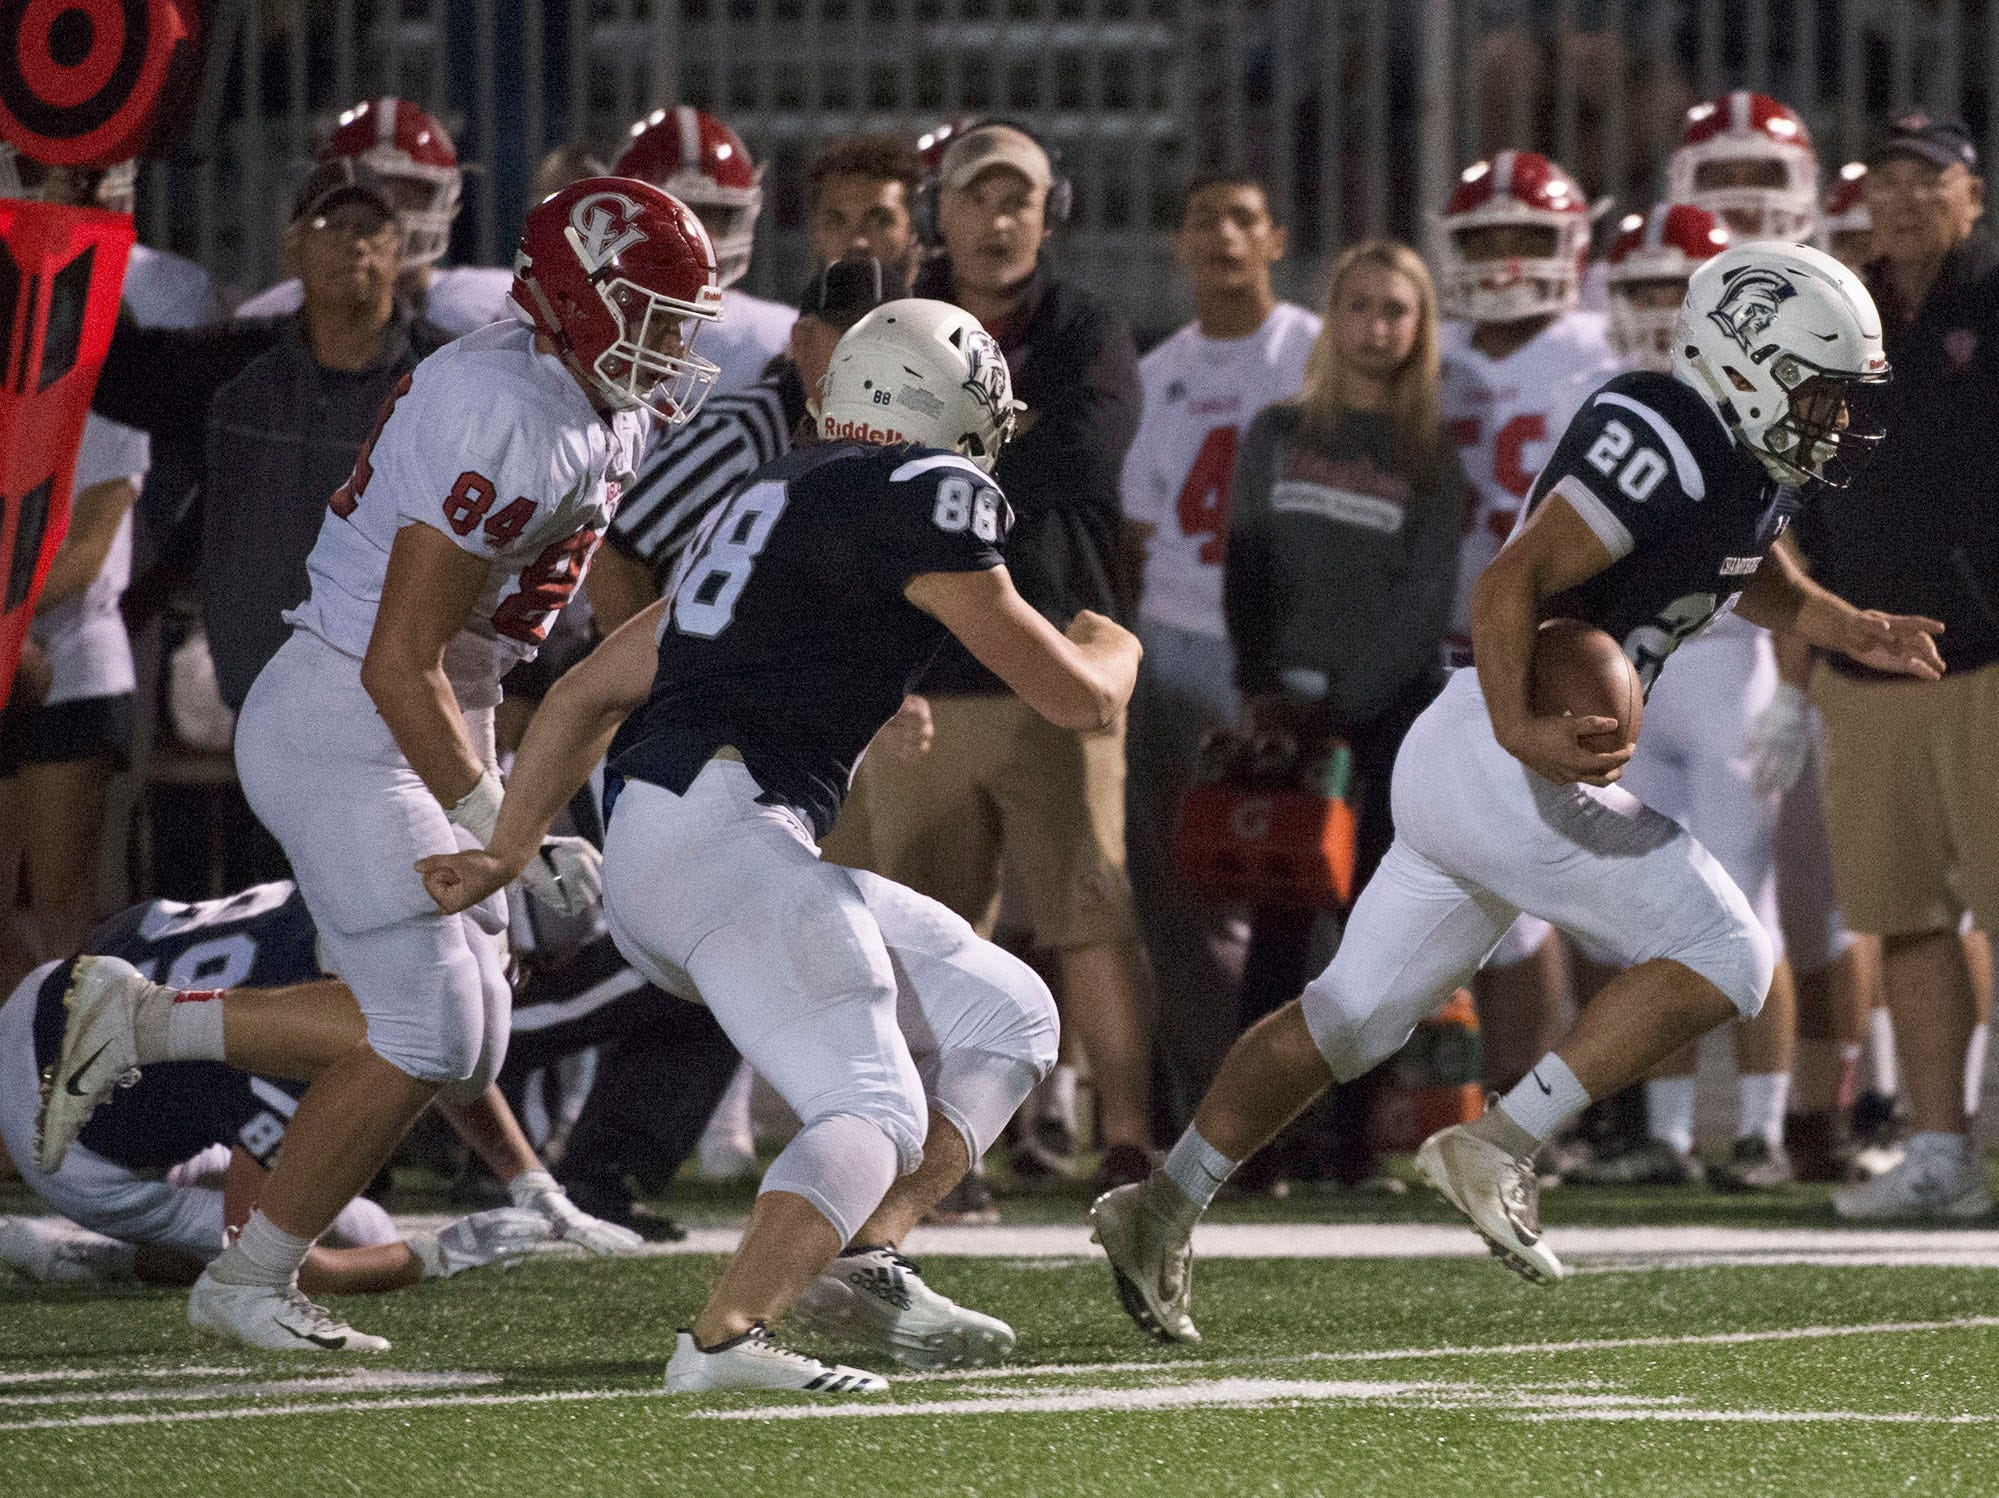 Chambersburg's Kyere Morton (20) returns a fumble to score. Chambersburg Trojans are 5-1 after a homecoming victory over Cumberland Valley 28-14 in PIAA football on Friday, Sept. 28, 2018.